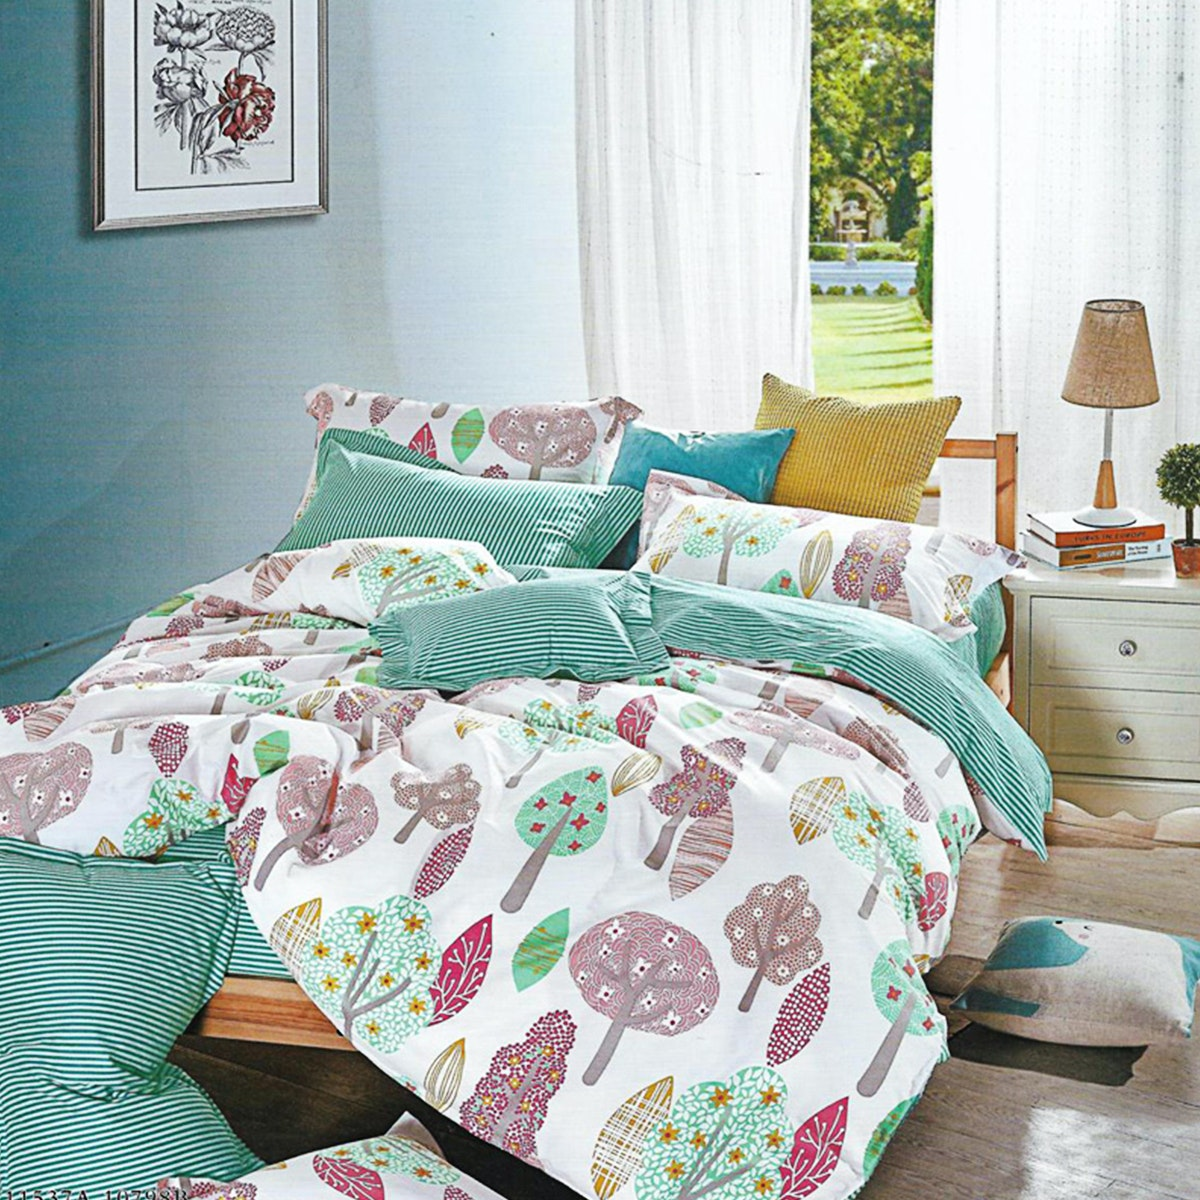 Sleep Buddy Set Sprei dan Bed Cover Greeny Garden Cotton Sateen 180x200x30